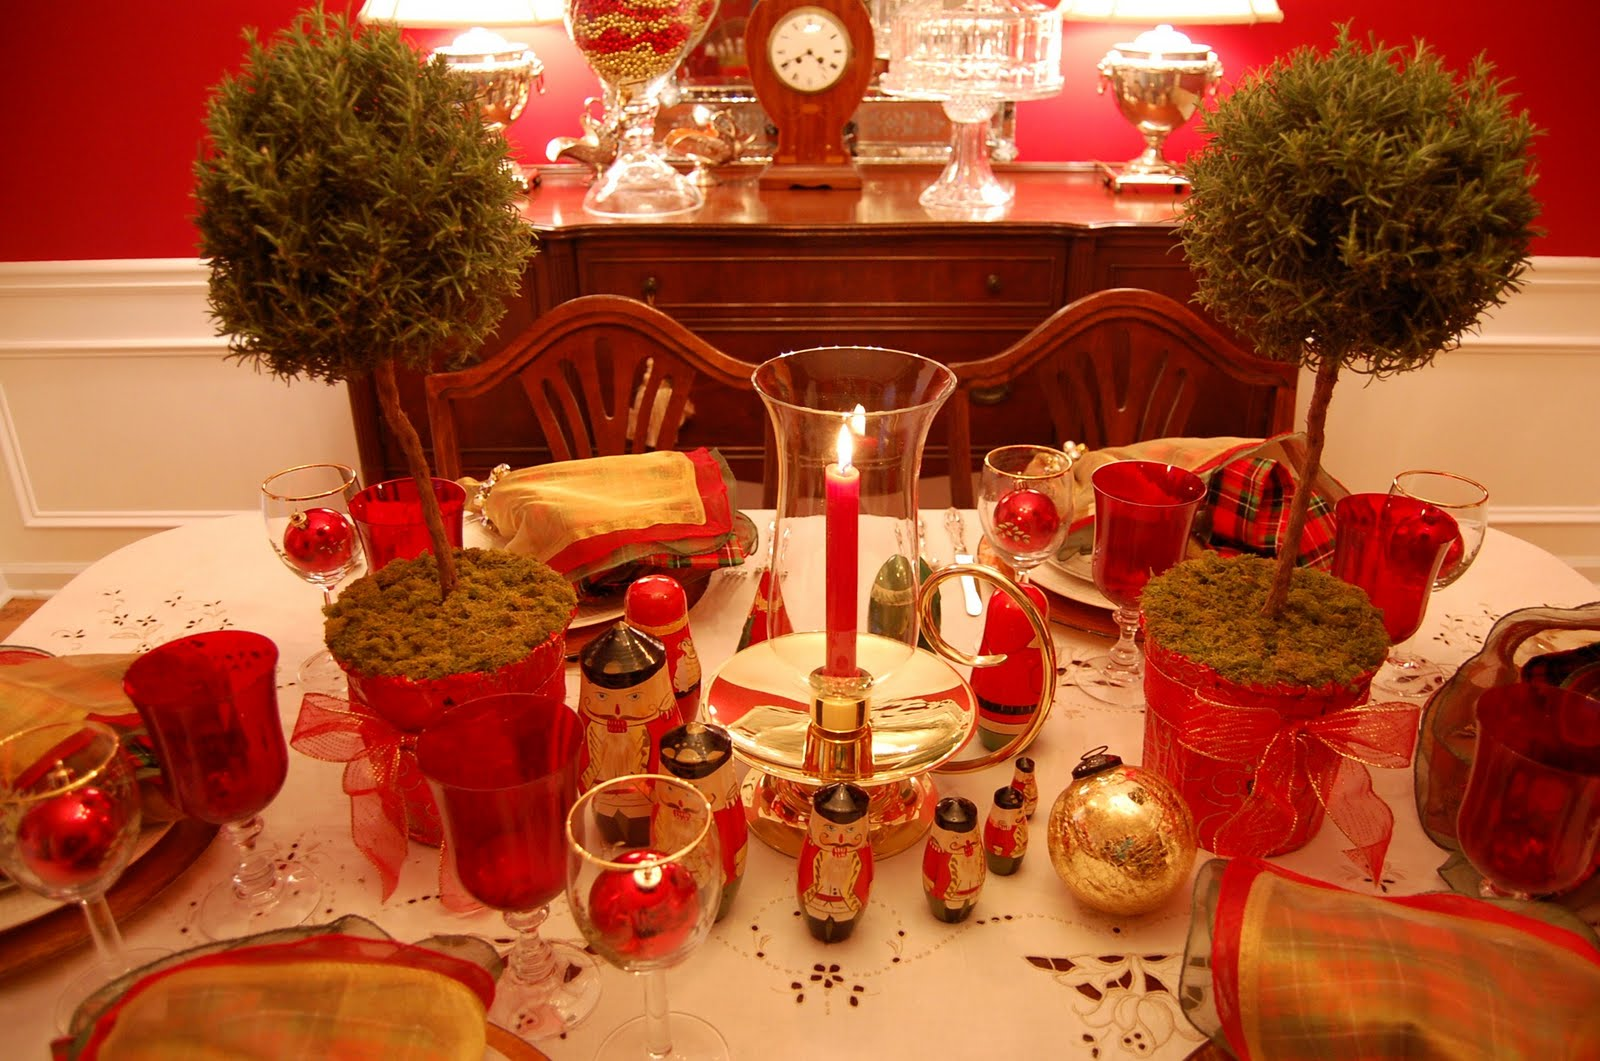 Christmas Table Setting Tablescape with Topiary Centerpiece : 14 from betweennapsontheporch.net size 1600 x 1061 jpeg 245kB